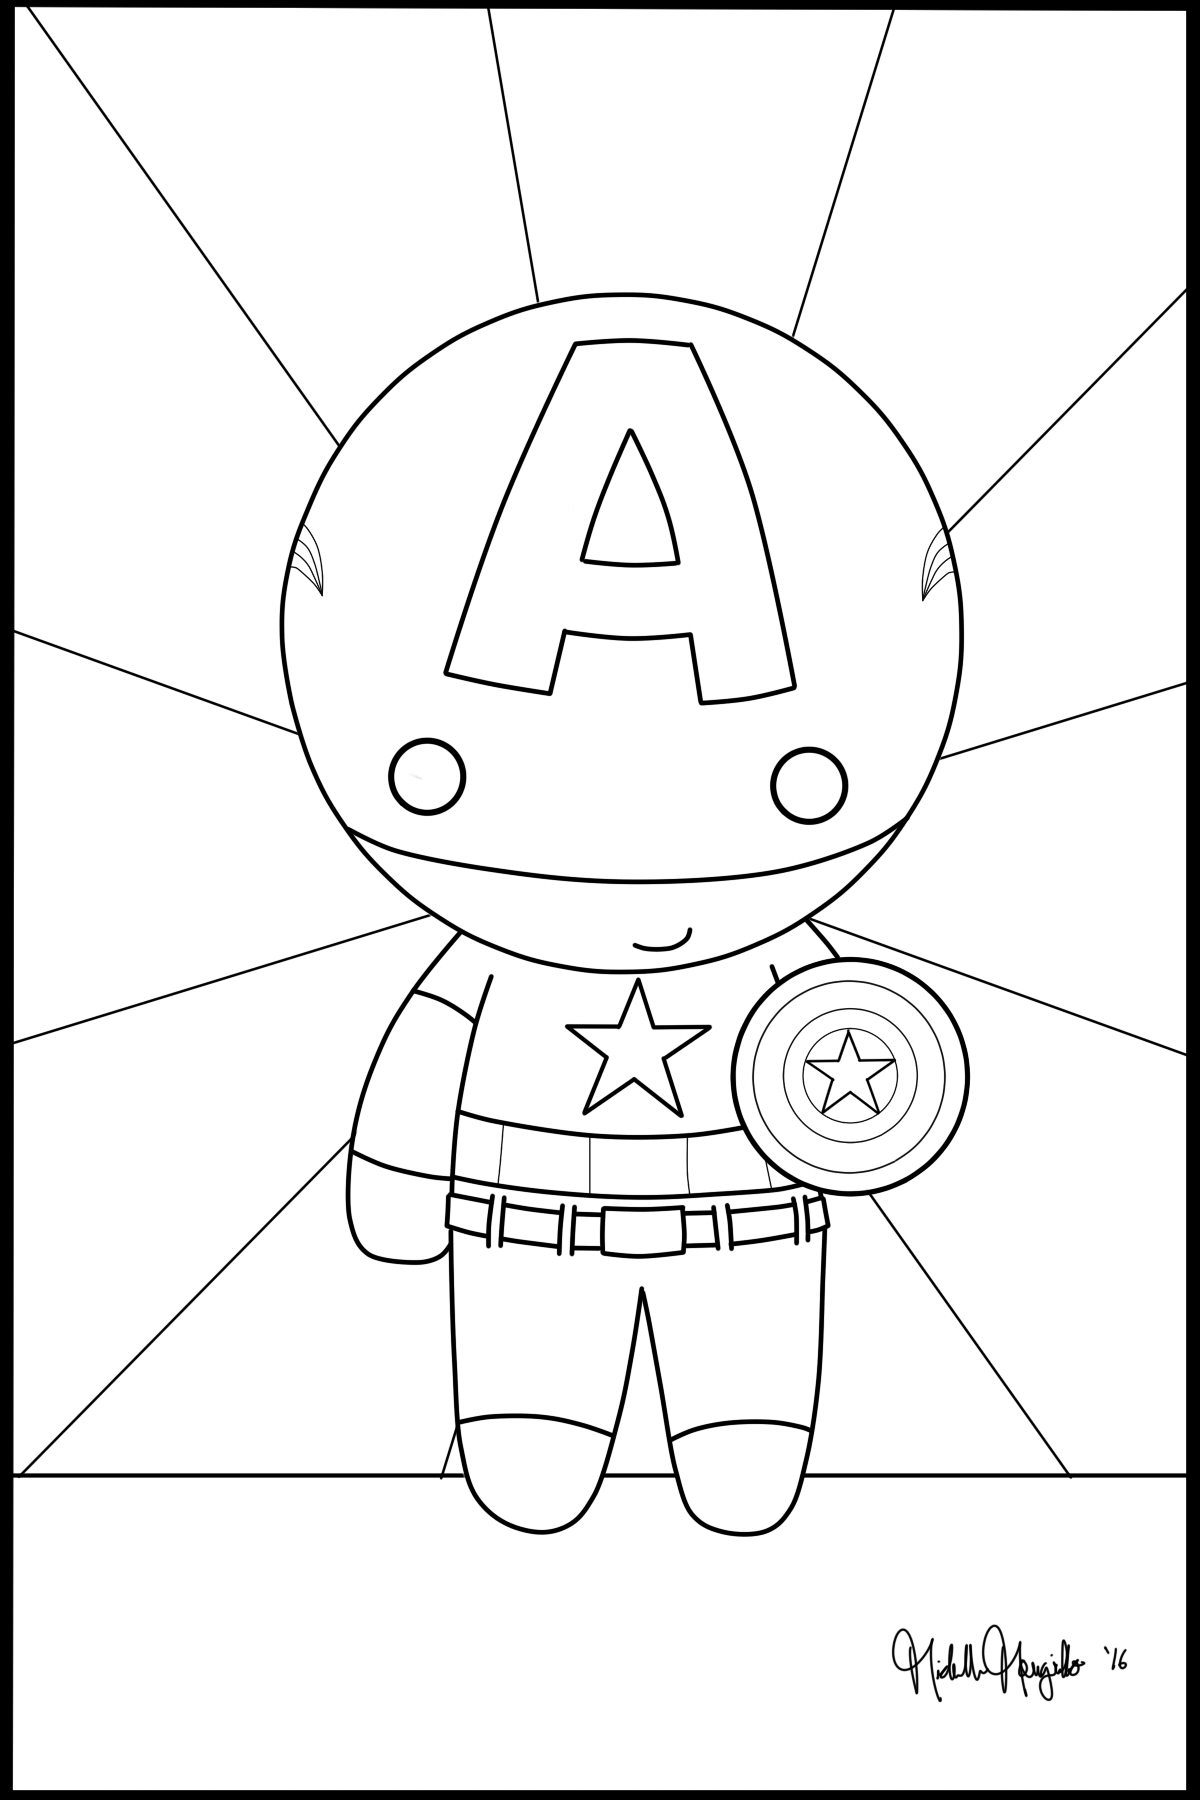 Anime Coloring Pages - Best Coloring Pages For Kids | 1800x1200